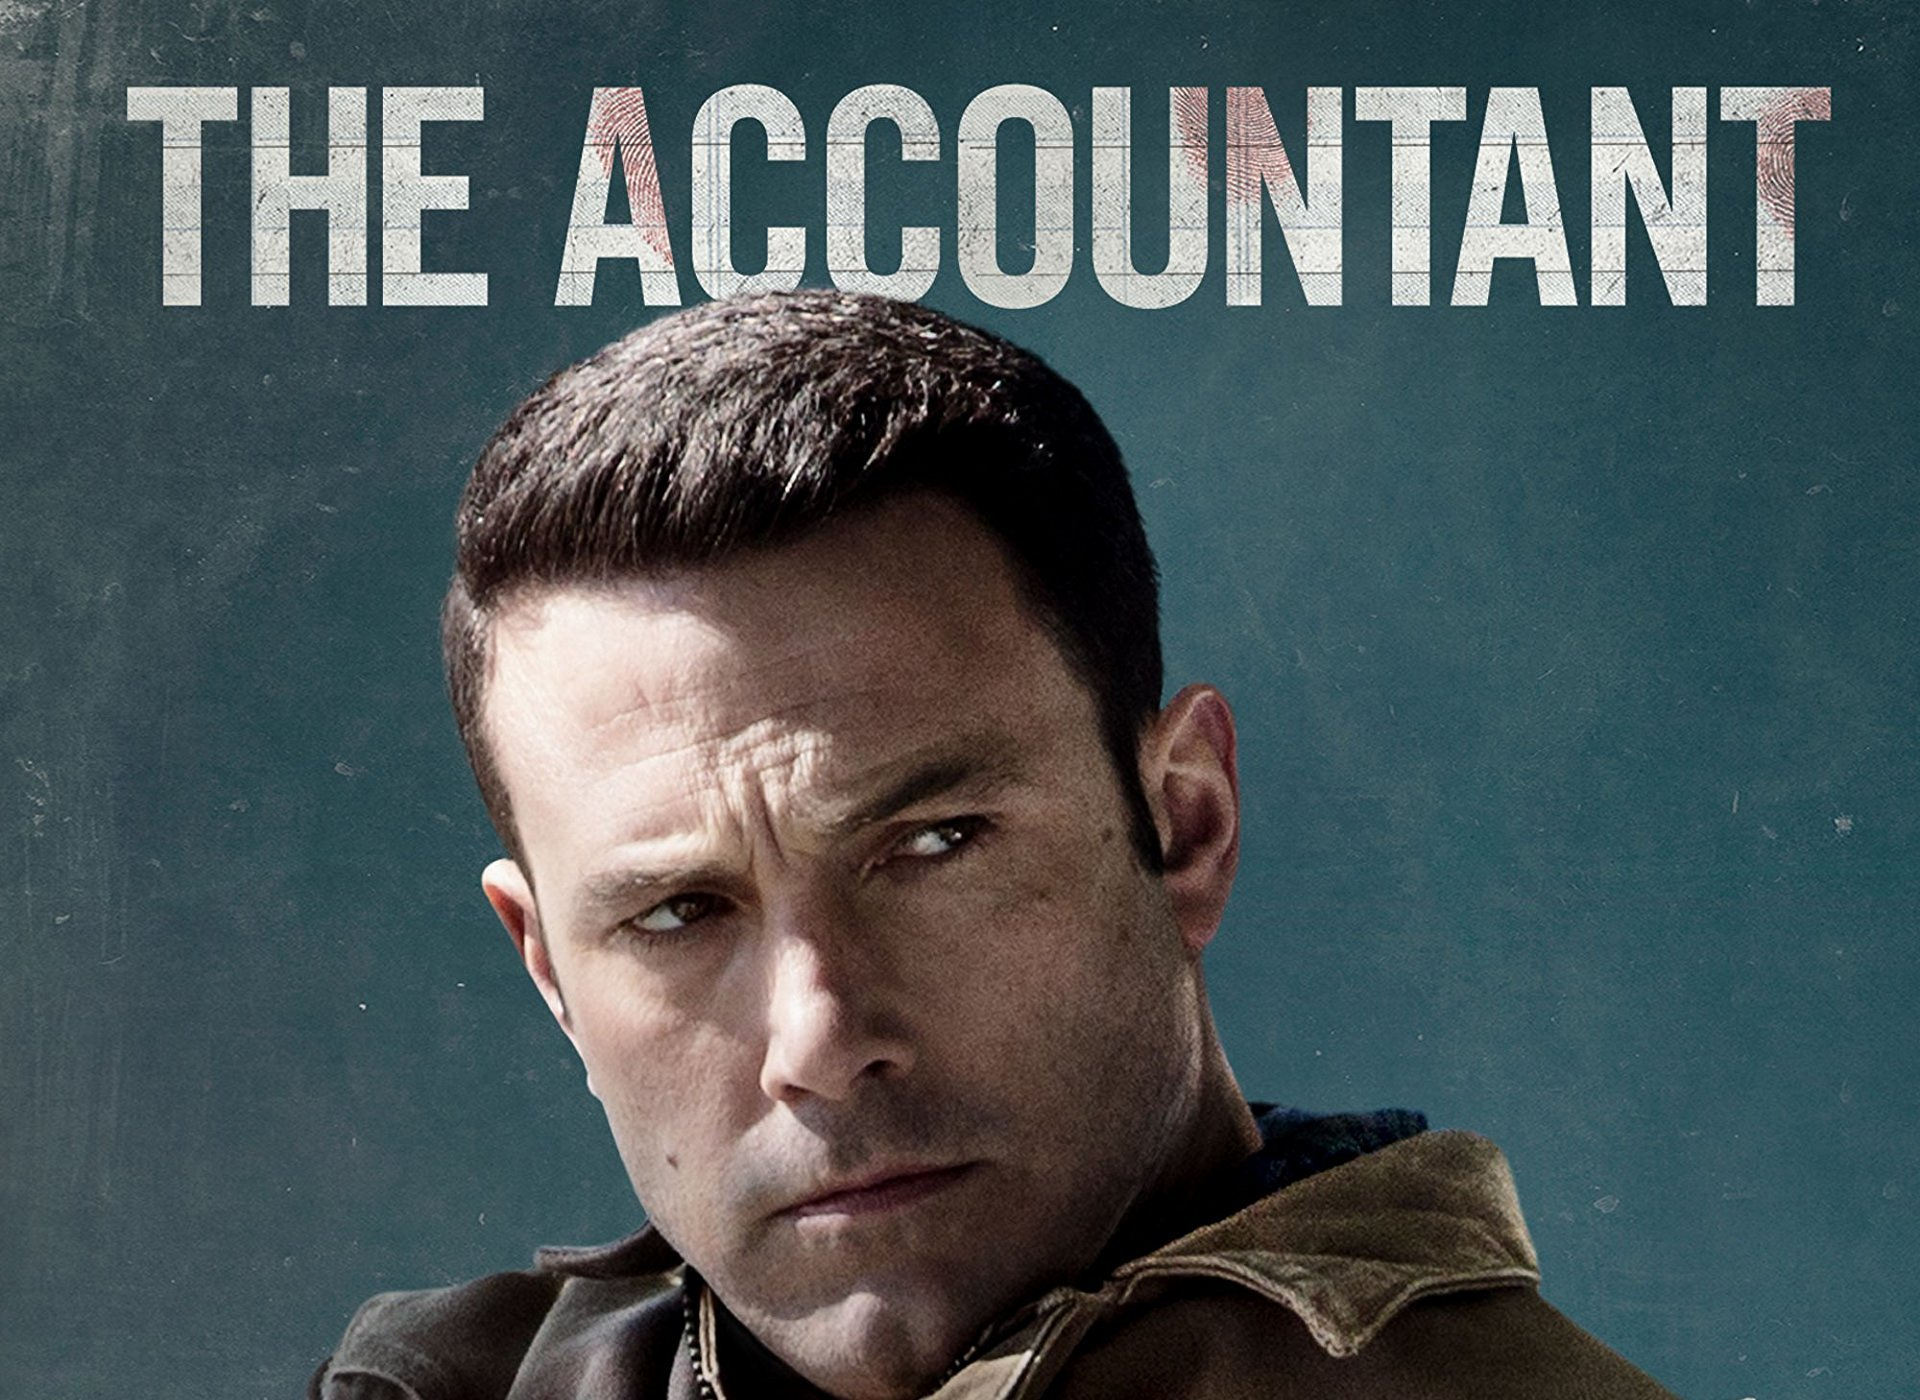 The Accountant Movie 2016 Review - Newslibre